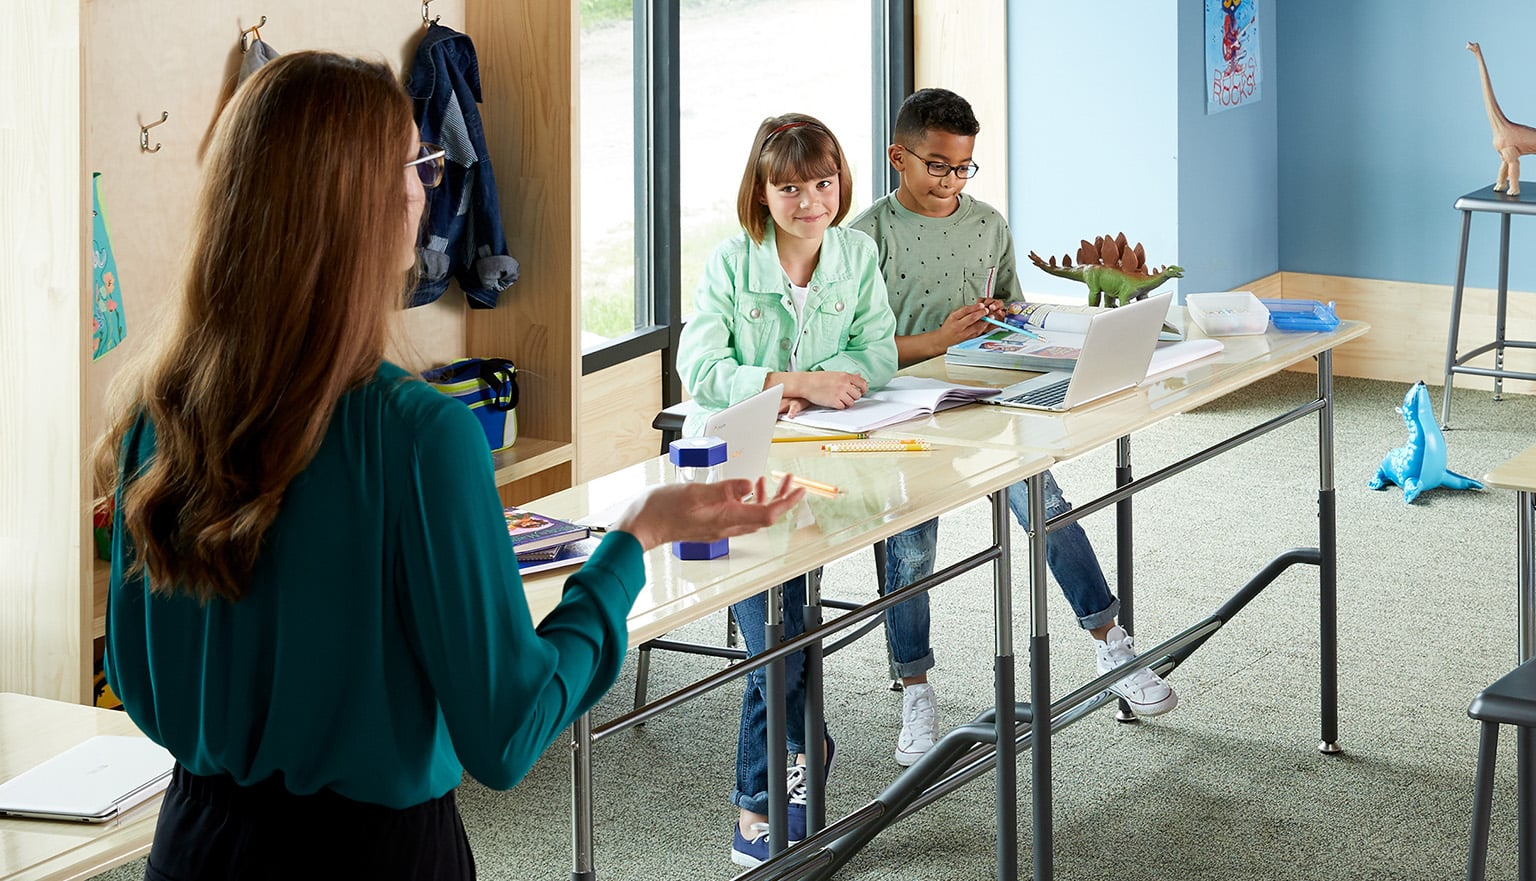 young students engage with teacher while standing at their school desks